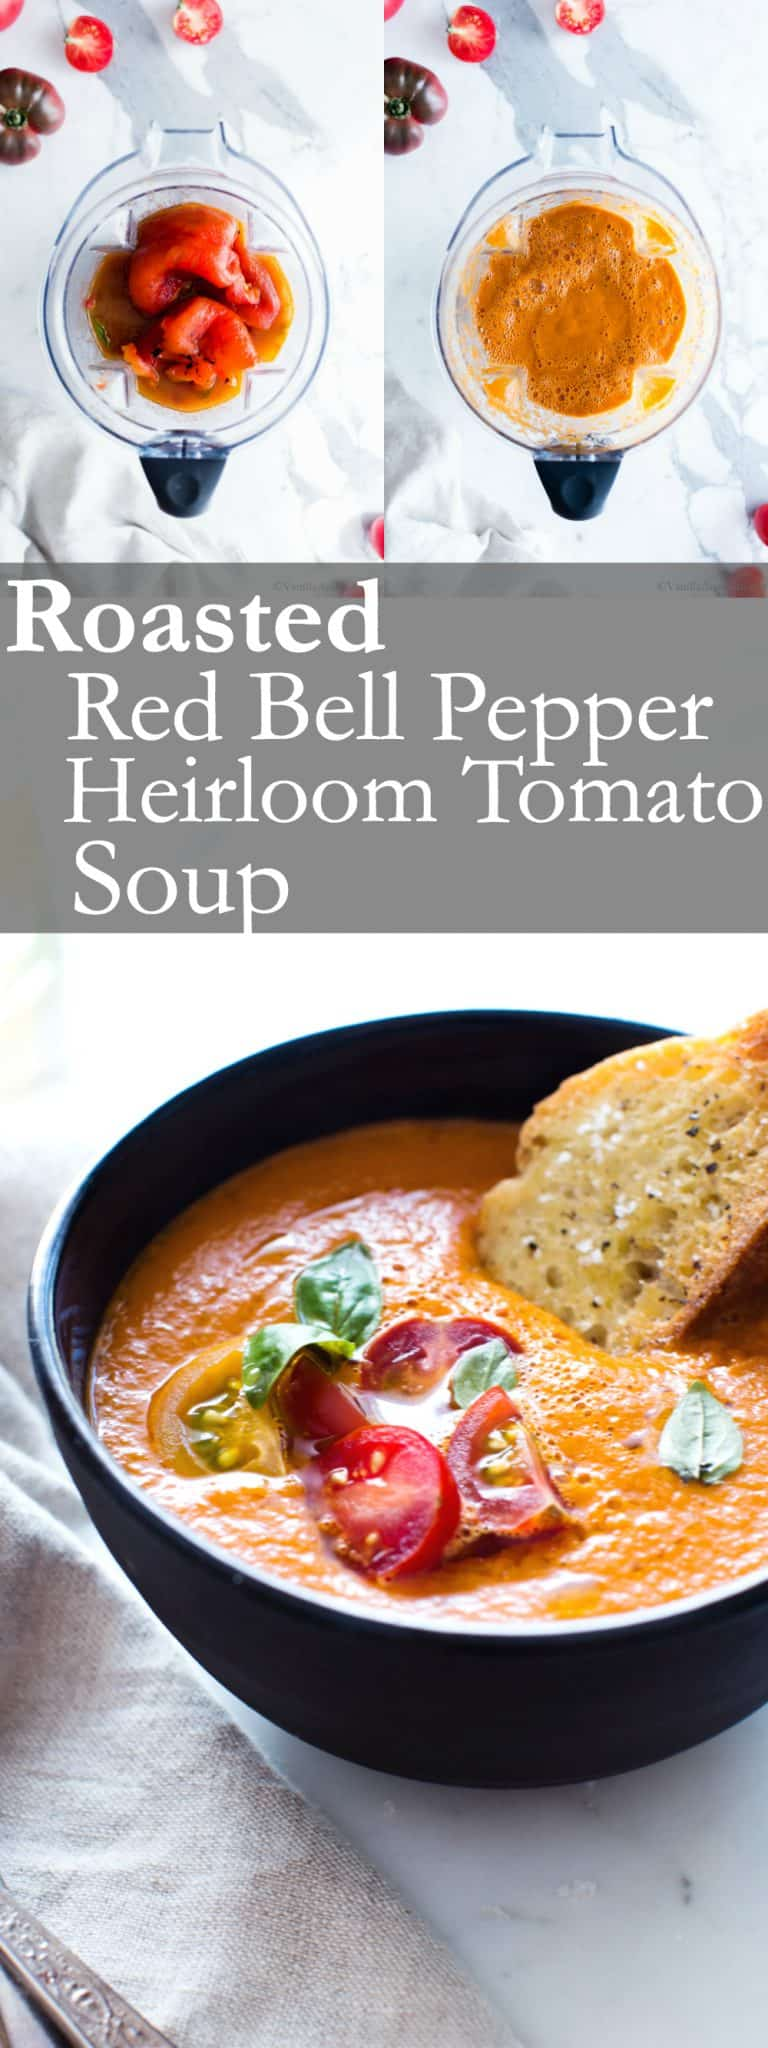 Hearty and rich with just 5 ingredients in this Roasted Red Bell Pepper and Heirloom Tomato Soup. Freeze with ease to preserve for winter days ahead. #TomatoSoup #RoastedRedBellPepper #SoupSeason #GlutenFree #Vegan